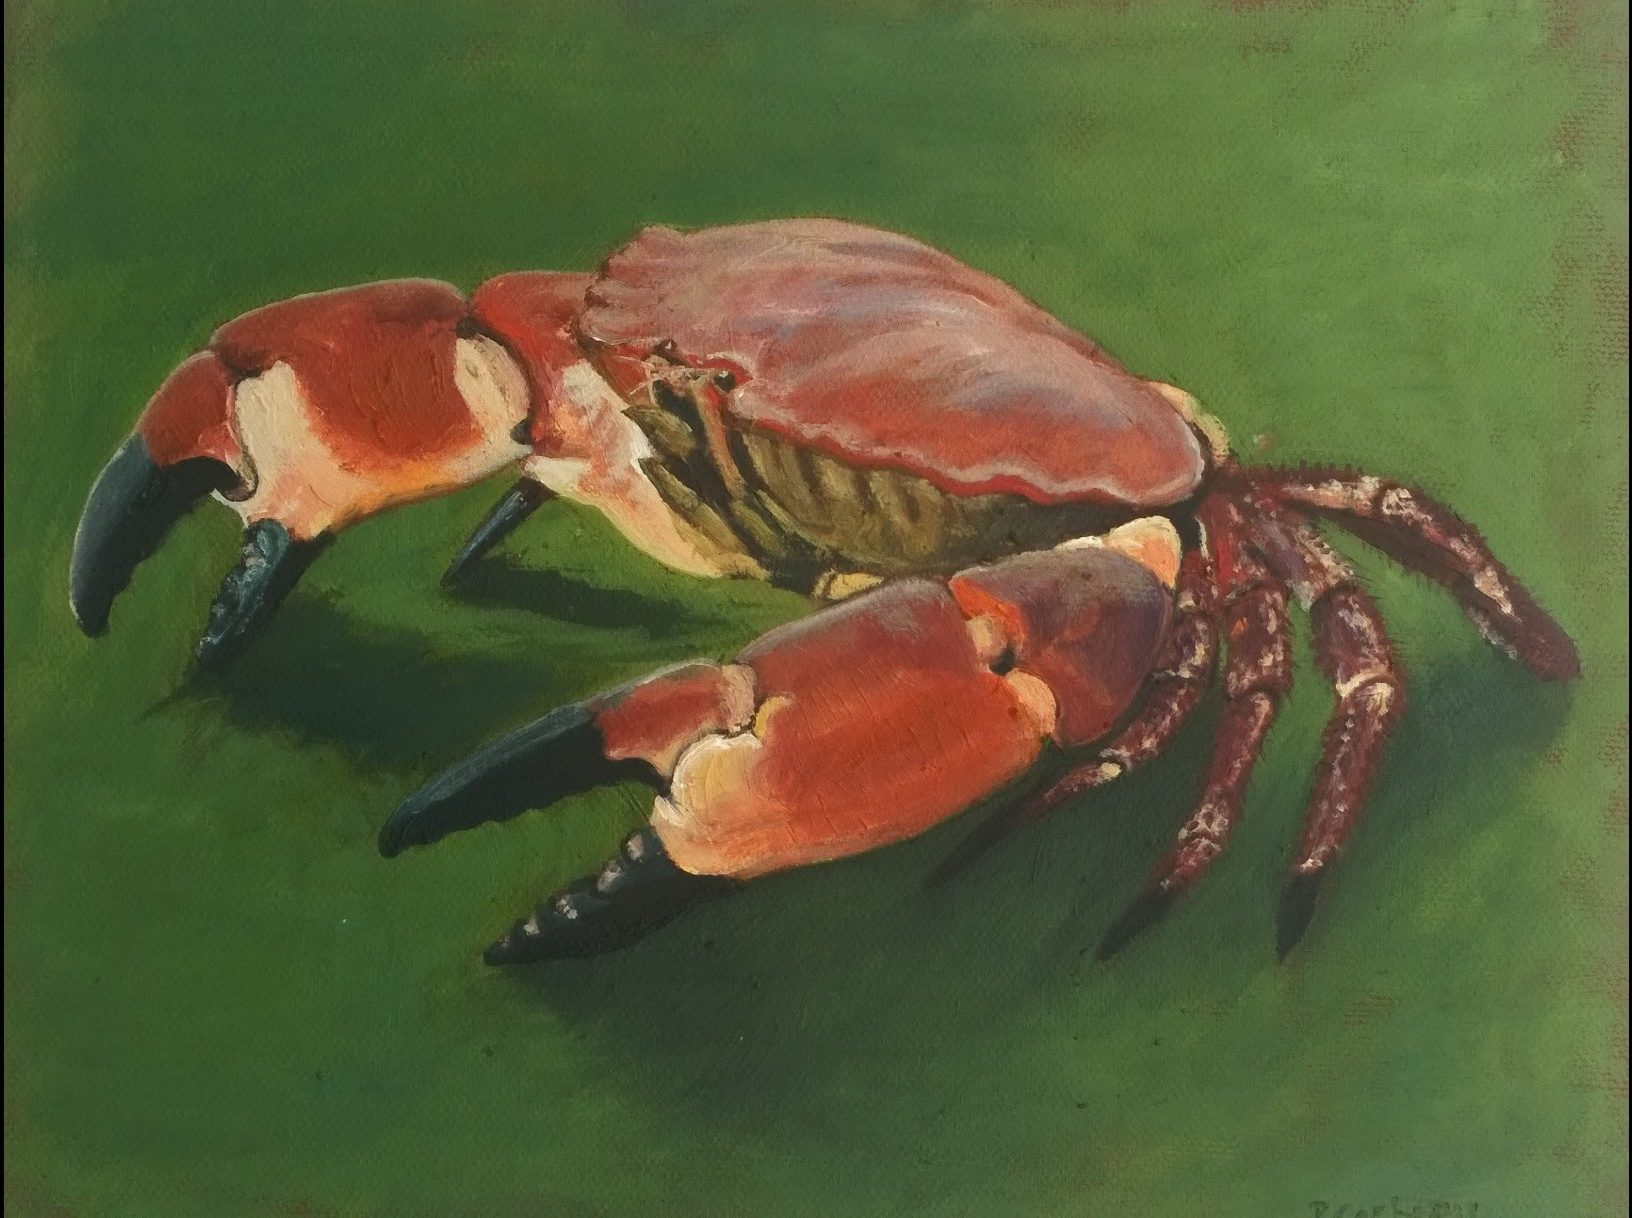 brown crab on green